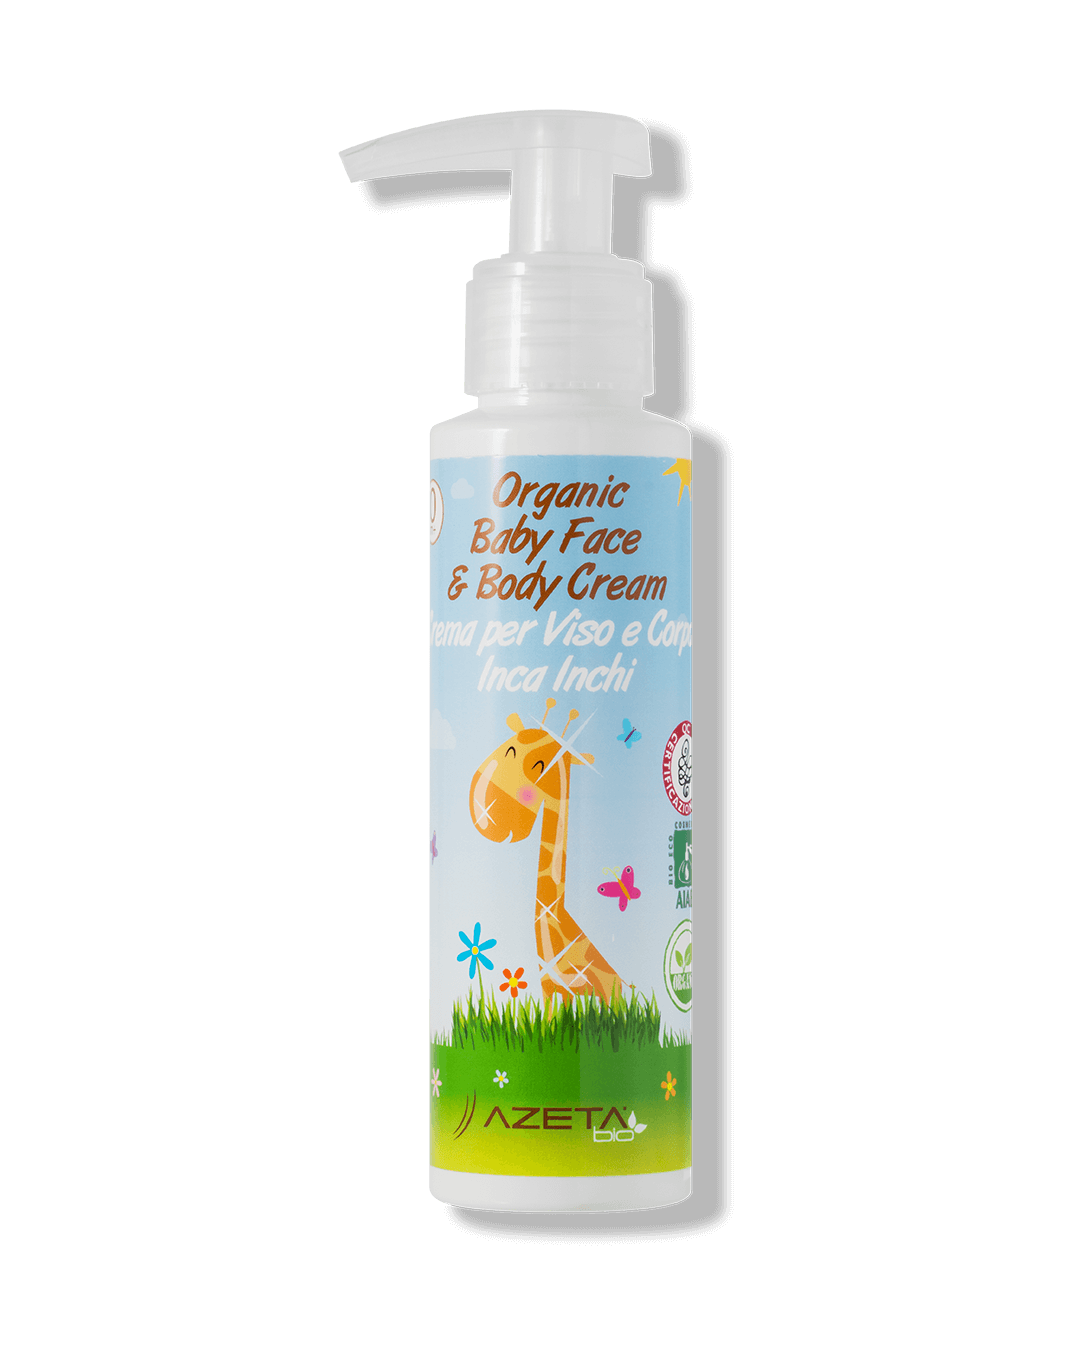 Organic Baby Face & Body Cream